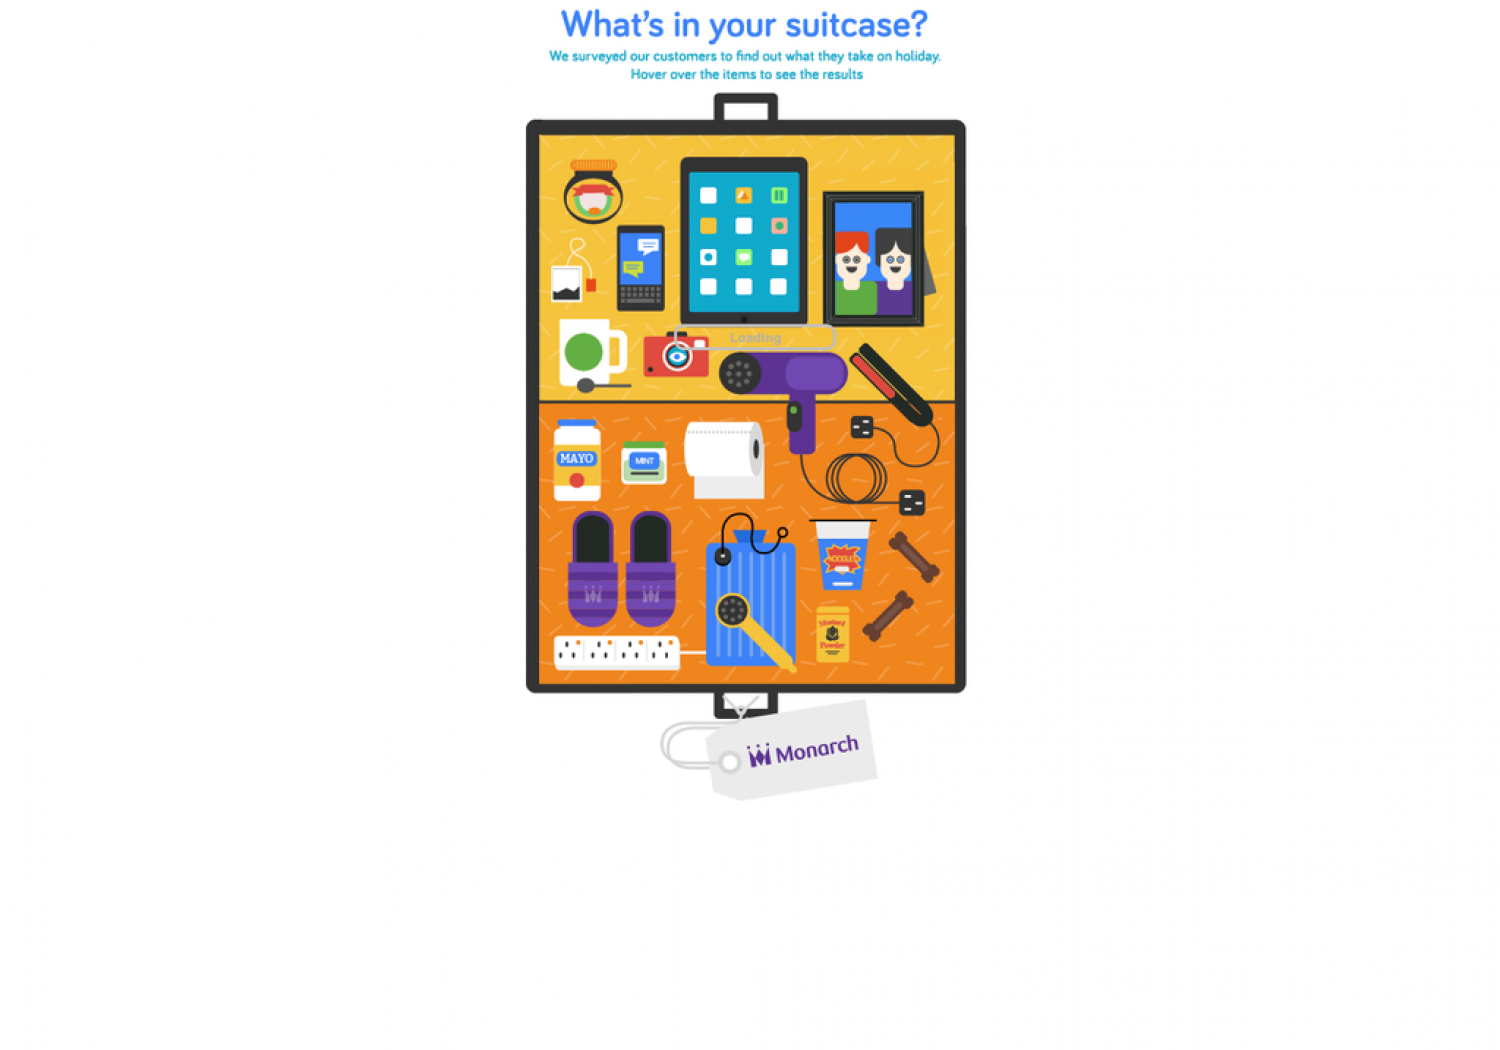 What's in your suitcase? Infographic